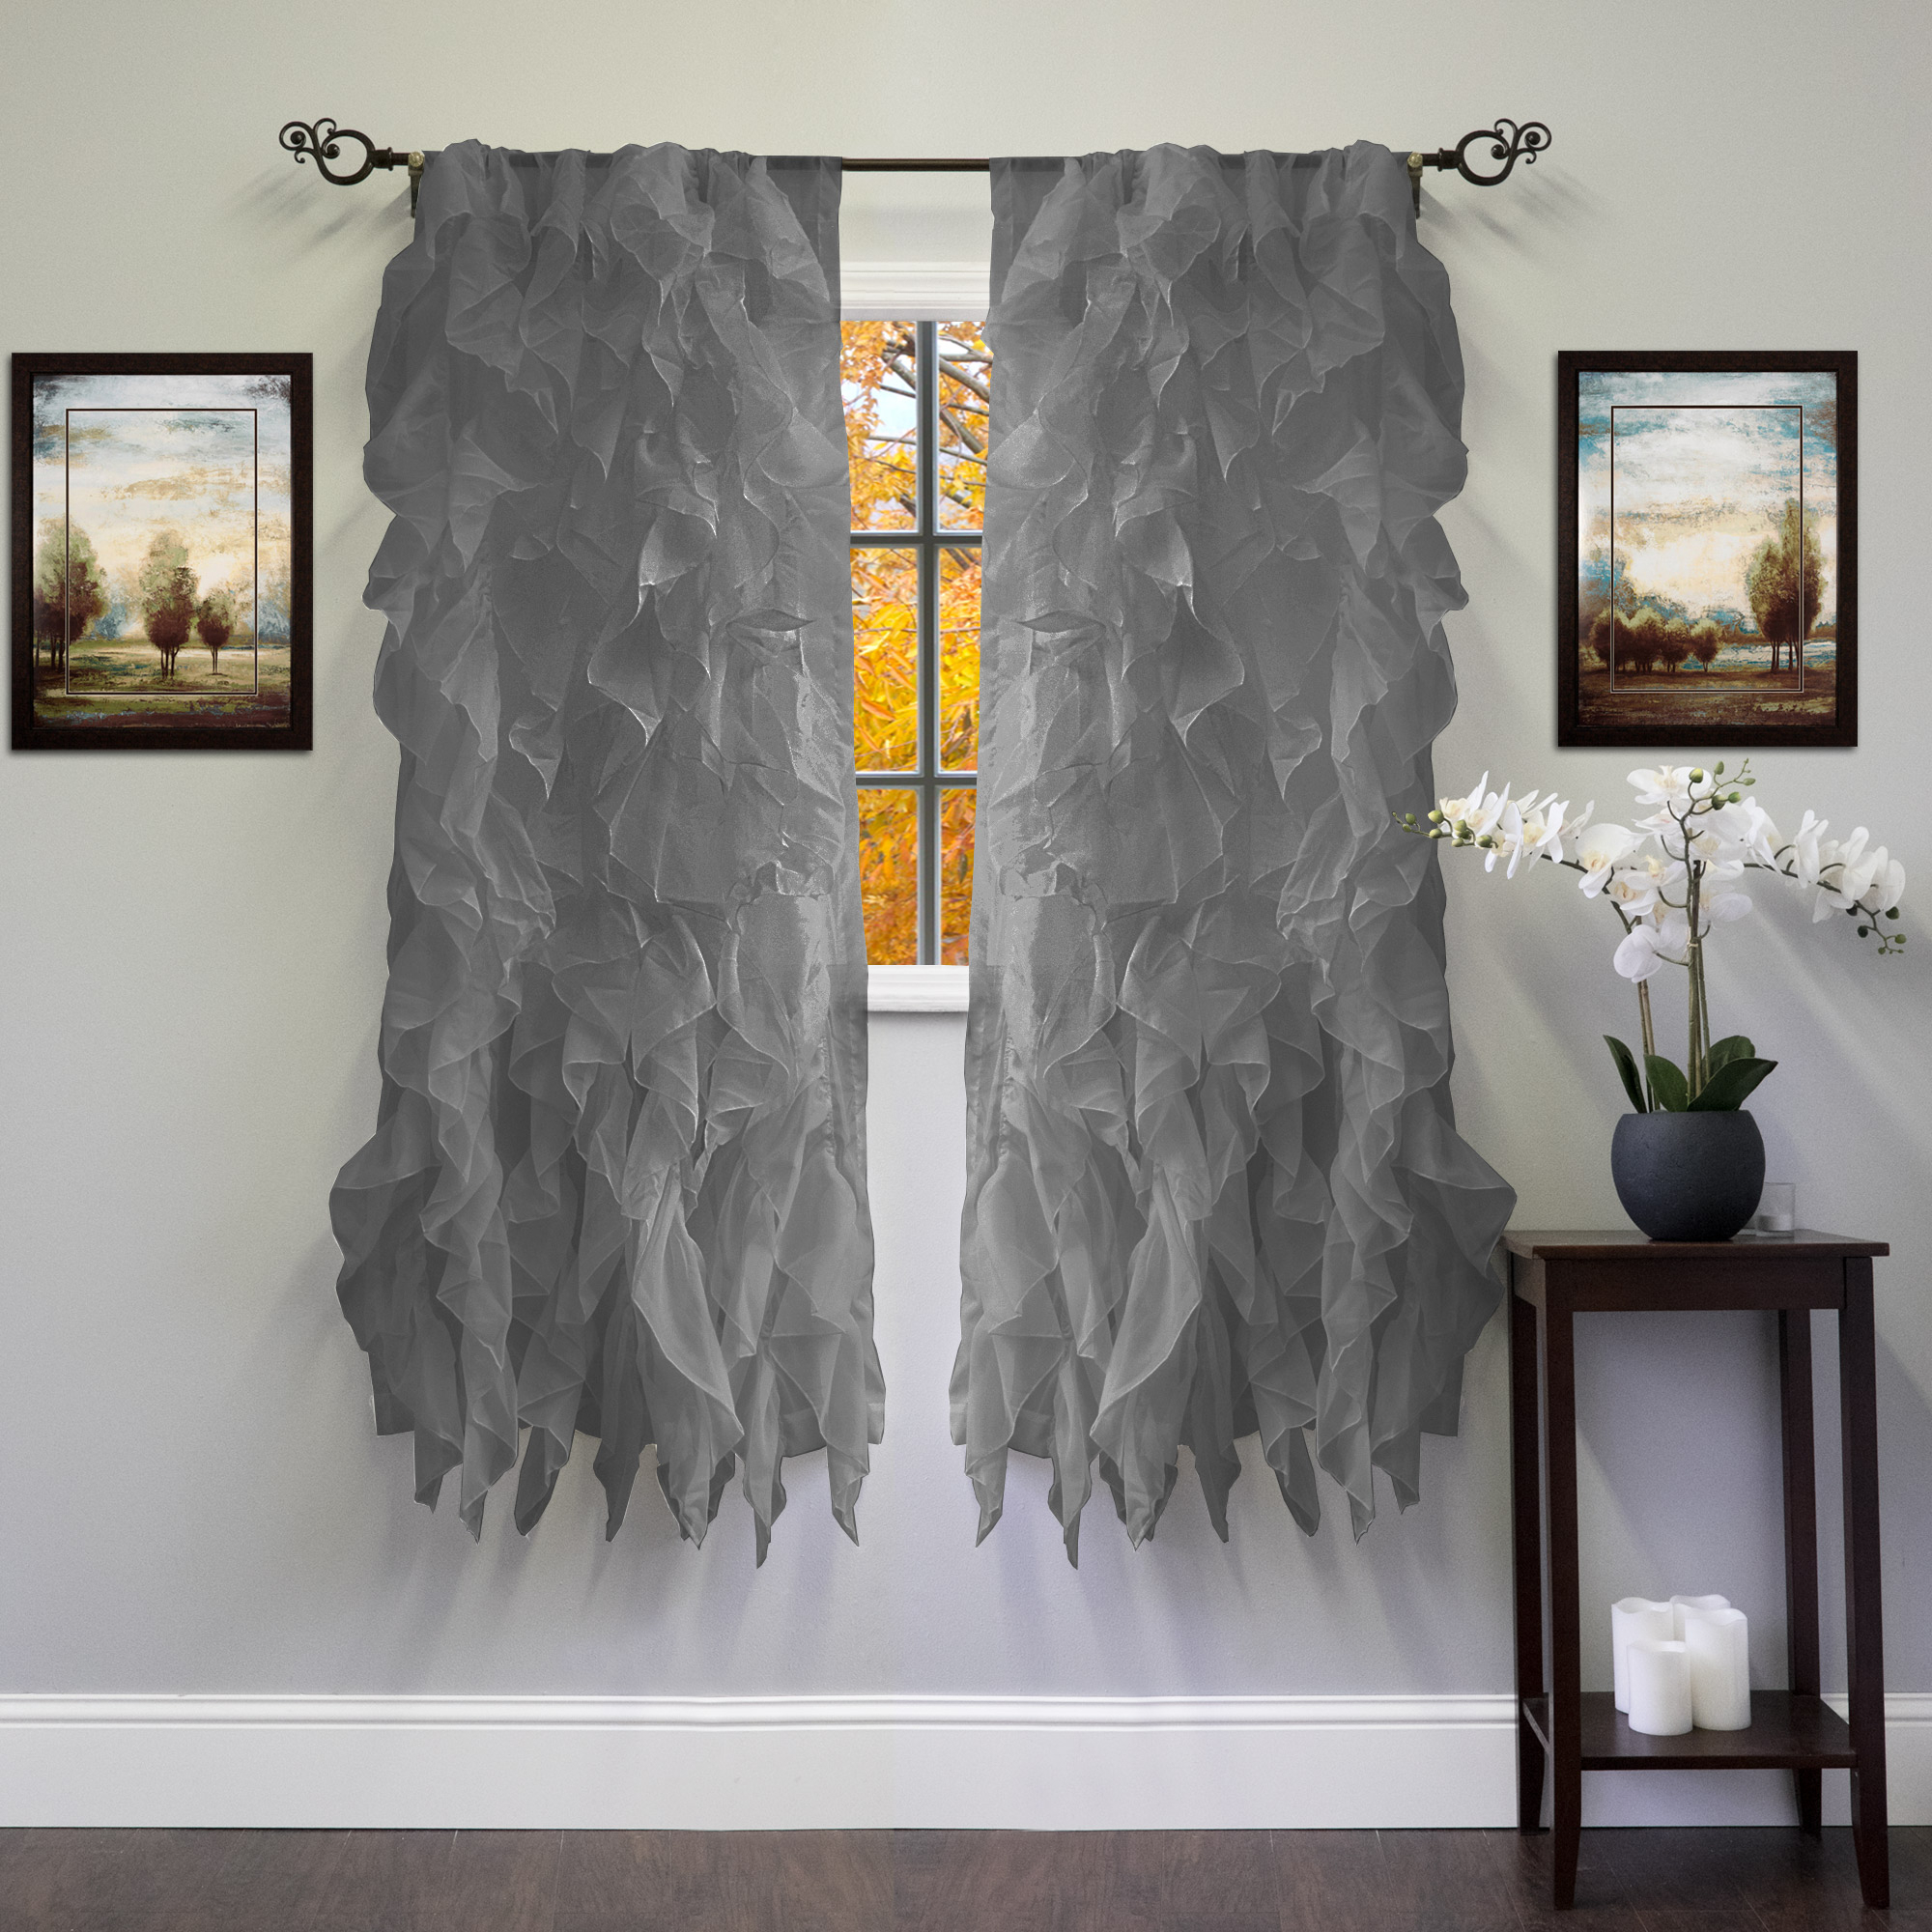 "Latest Chic Sheer Voile Vertical Ruffled Tier Window Curtain Panel 50"" X 63"" –  Walmart With Regard To Chic Sheer Voile Vertical Ruffled Window Curtain Tiers (Gallery 6 of 20)"